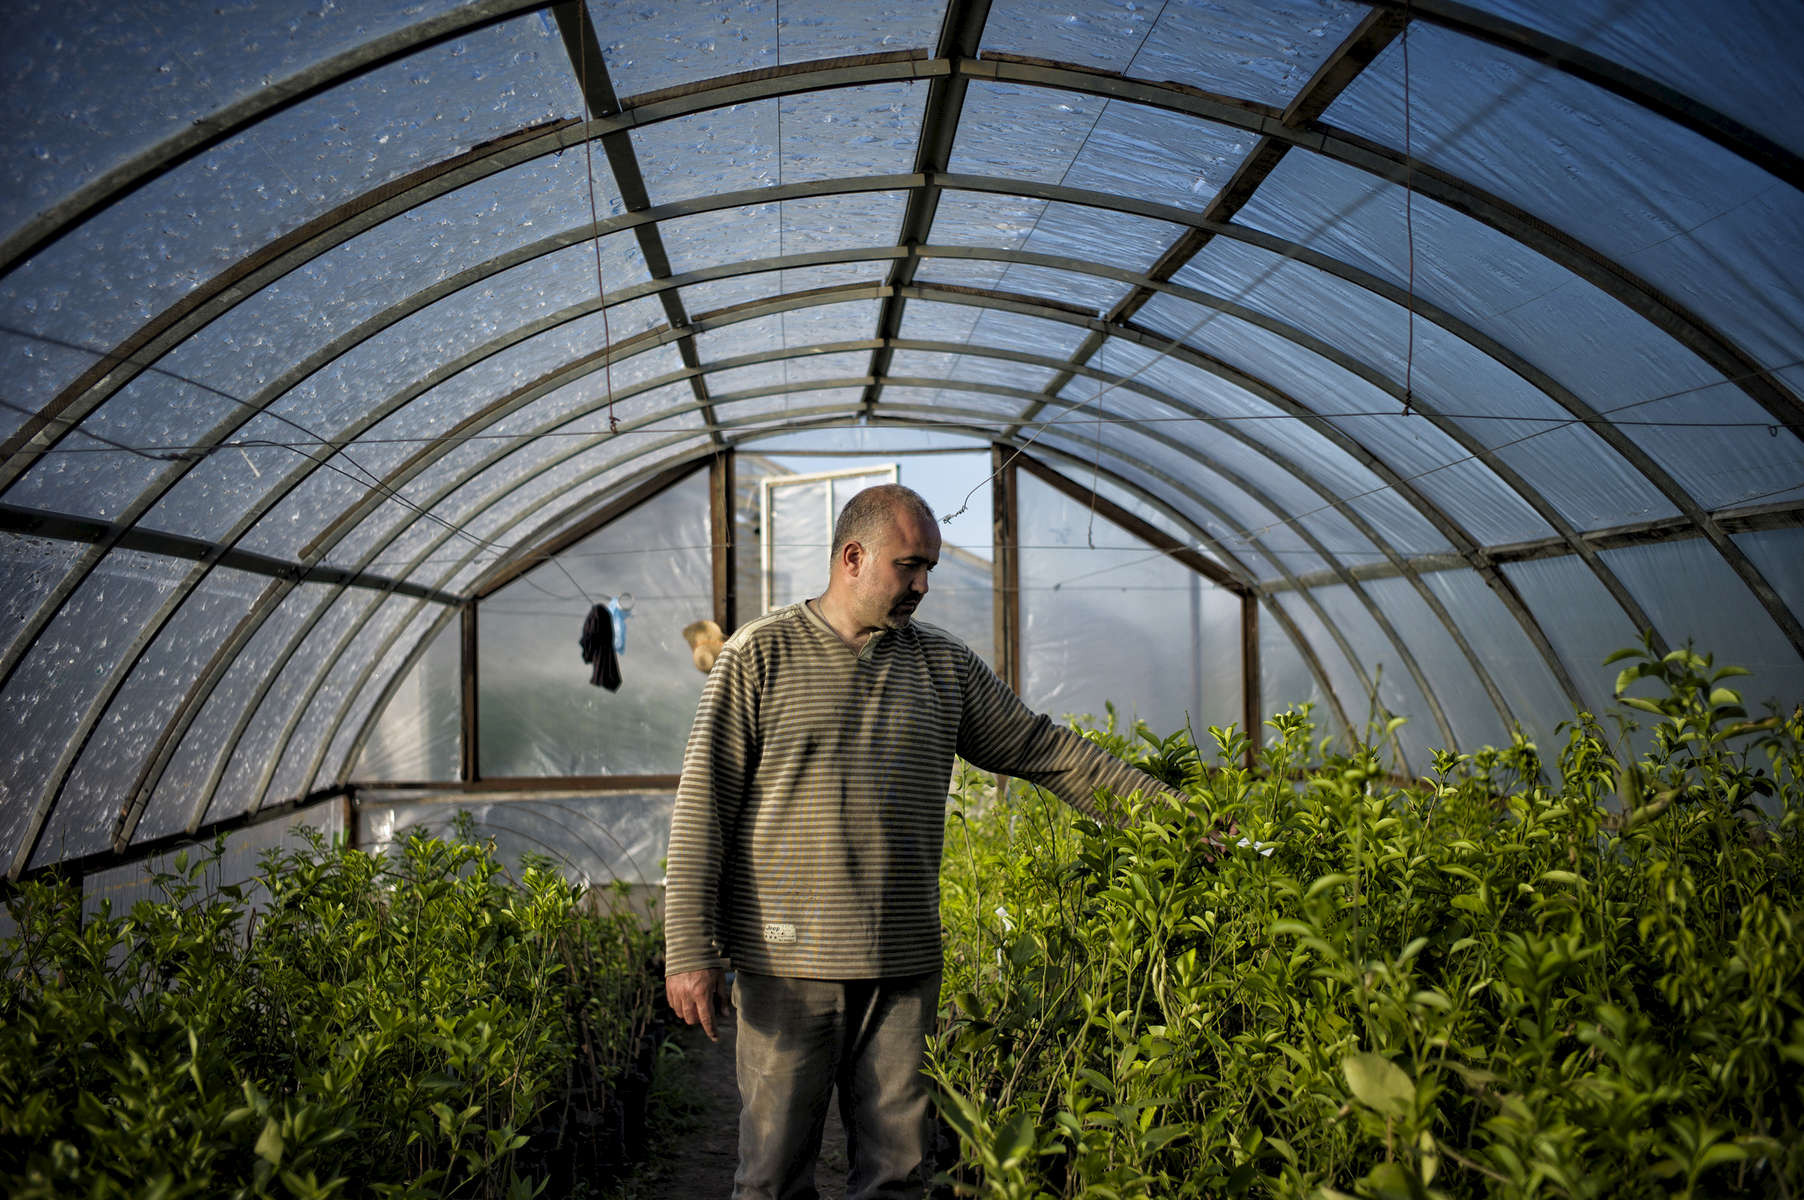 June 15, 2013: BERKADZOR, NAGORNO-KARABAKH-   Syrian-Armenian Vrej Esmerian walks through a greenhouse full of orange and lemon trees he has planted with his brother Hovig in Berkadzor, near the Nagorno-Karabakh capital of Stepanakert.  The brothers, who are originally from Aleppo are planting 15,000 saplings of different varieties ranging from citrus trees to olive trees to flowers, pine nuts, cactuses, grapes, coffee, and laurels, in an attempt to create a new industry for the unrecognized republic.  Deeply patriotic, Vrej considers this project to be his contribution to the Armenian people.  Nagorno-Karabakh, which in the Soviet Union was under the control of Azerbaijan, has been a de facto independent state since the 1988-94 Karabakh War in which its secessionist ethnic-Armenian population, backed by the Republic of Armenia, fought a war against the newly independent Azerbaijan, resulting in major population  shifts as Azeri residents of Karabakh fled to Azerbaijan and ethnic Armenians fled Azerbaijan for the Republic of Armenia.  While the war theoretically ended in 1994, hostilities occasionally flare up, and Karabakh's final status is far from settled, with Azerbaijan referring to it as occupied territory that it hopes to regain and Armenia controlling the only actual access to the republic. As a result, the movement of Syrian refugees into the territory, although voluntary on the part of the families rather than part of a state-run plan, has the potential to be extremely controversial.  Photo by Scout Tufankjian/Polaris